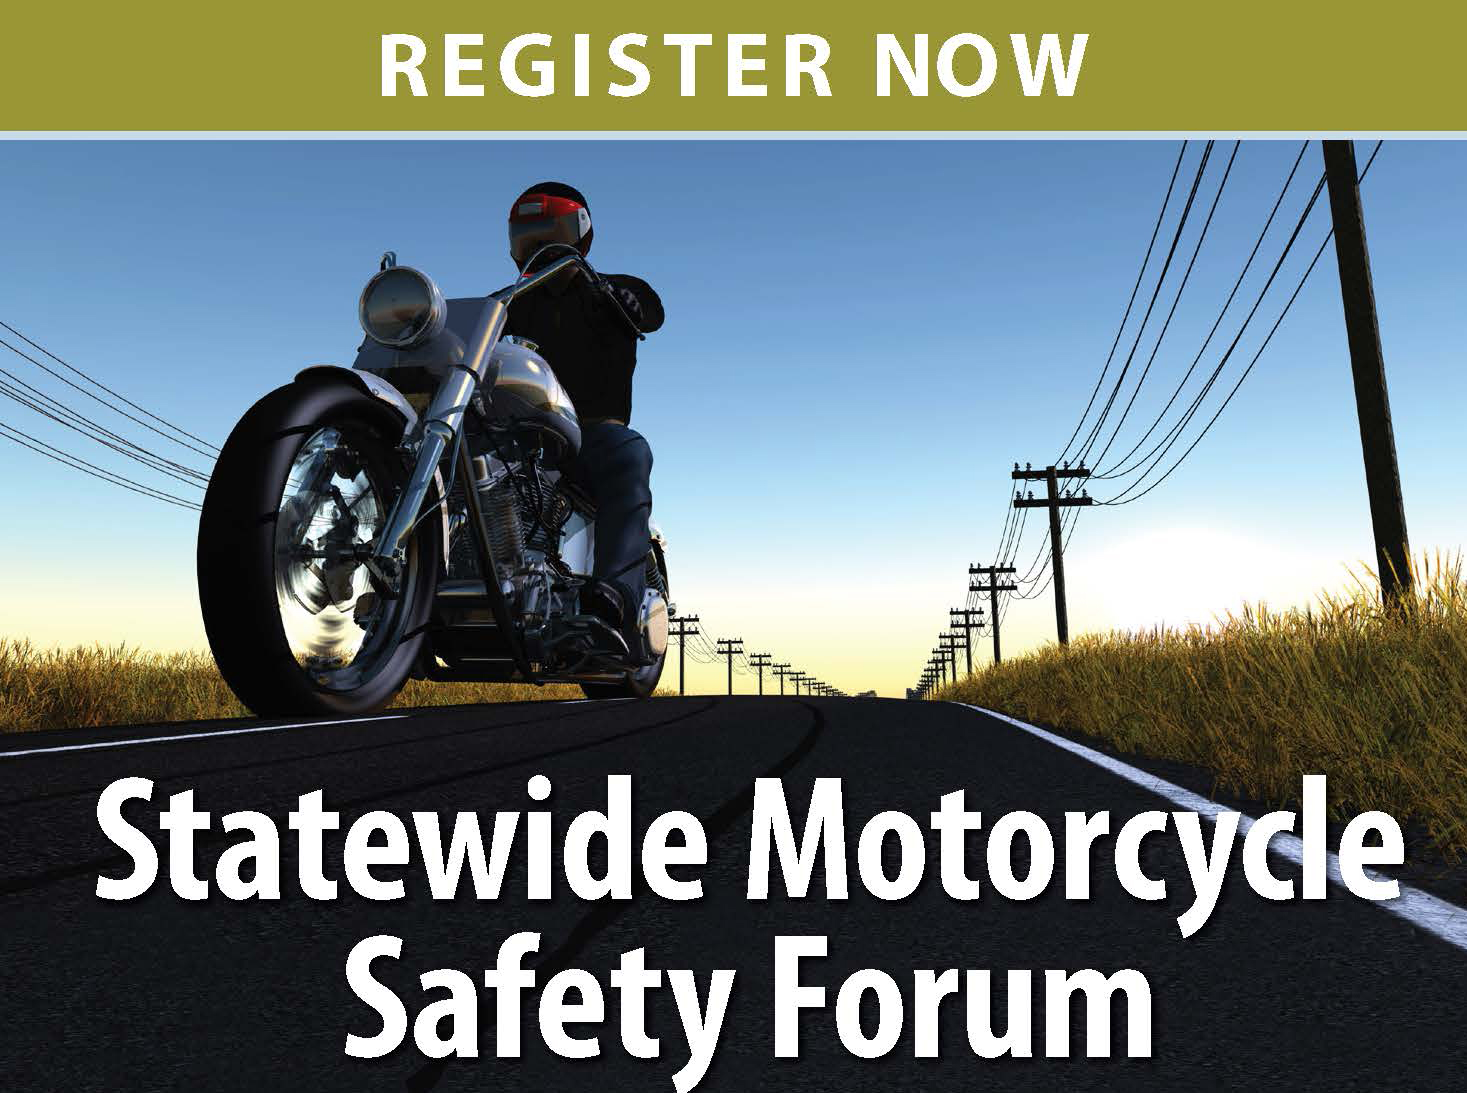 Motorcycle Safety Forum web banner